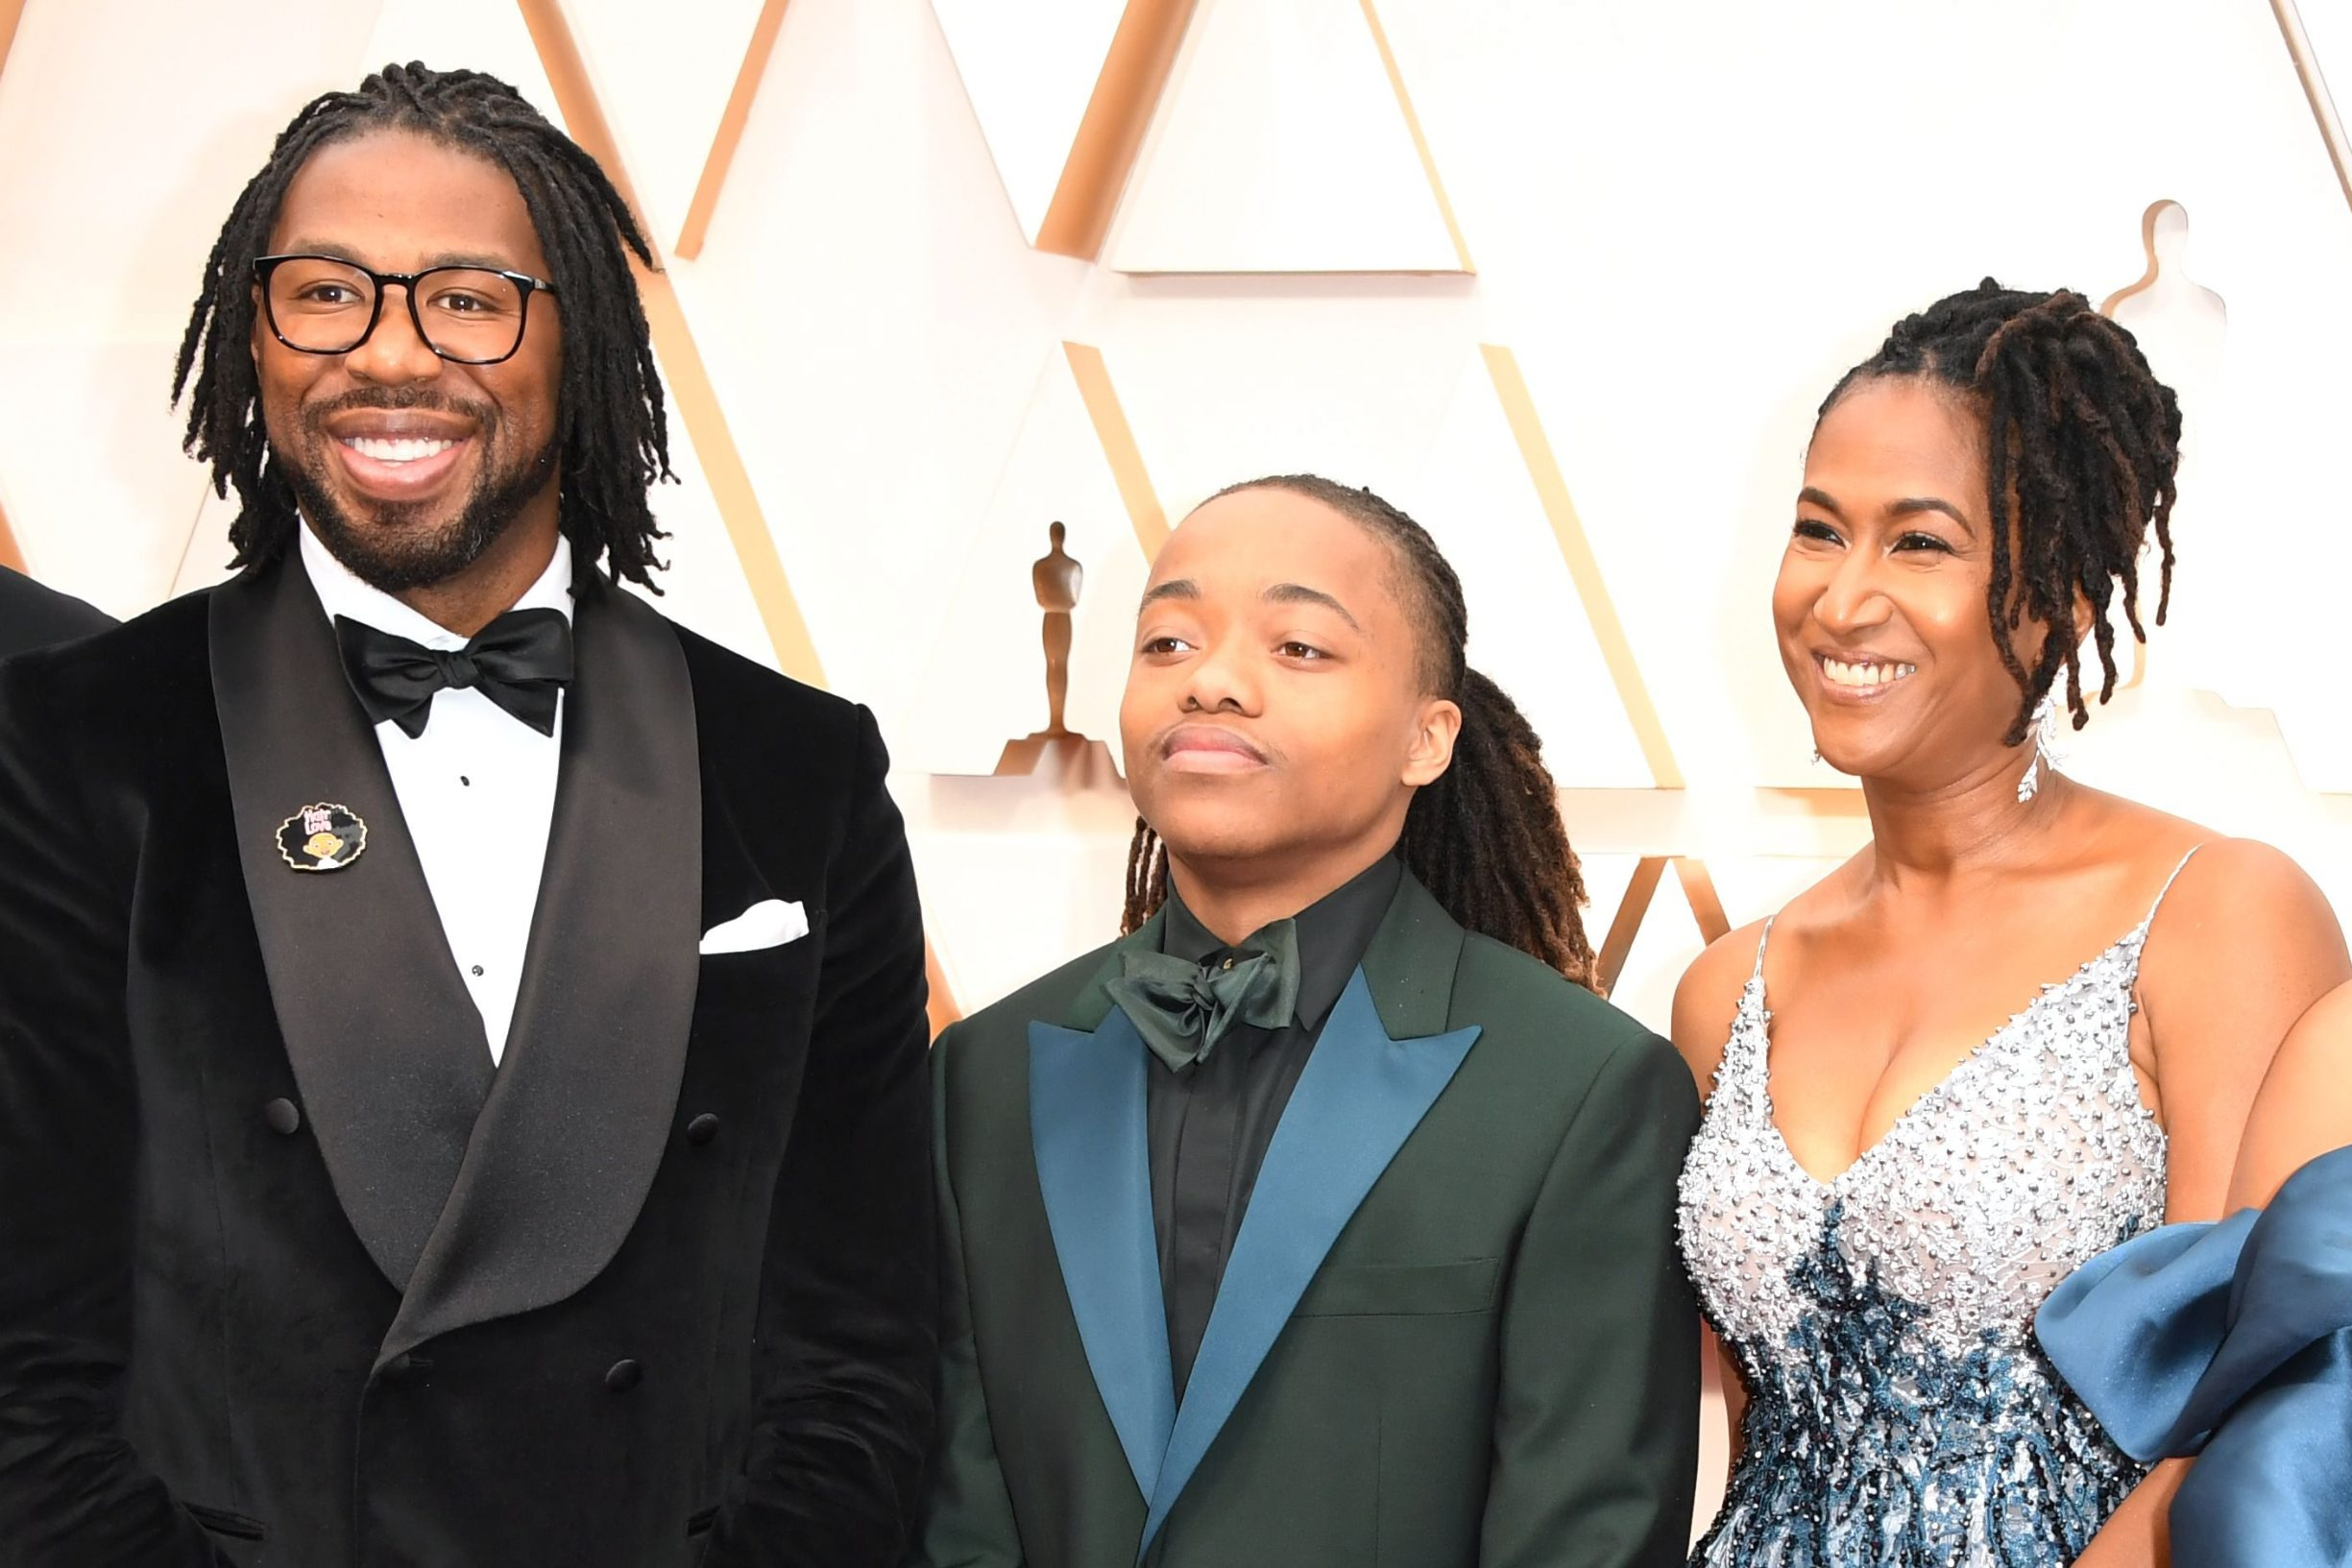 US director Matthew A. Cherry (L), US producer Karen Rupert Toliver (R) and Deandre Arnold (3rd L), the Texas teen who was told his dreadlocks violated school dress code, arrive for the 92nd Oscars at the Dolby Theatre in Hollywood, California on February 9, 2020. (Photo by Robyn Beck / AFP)